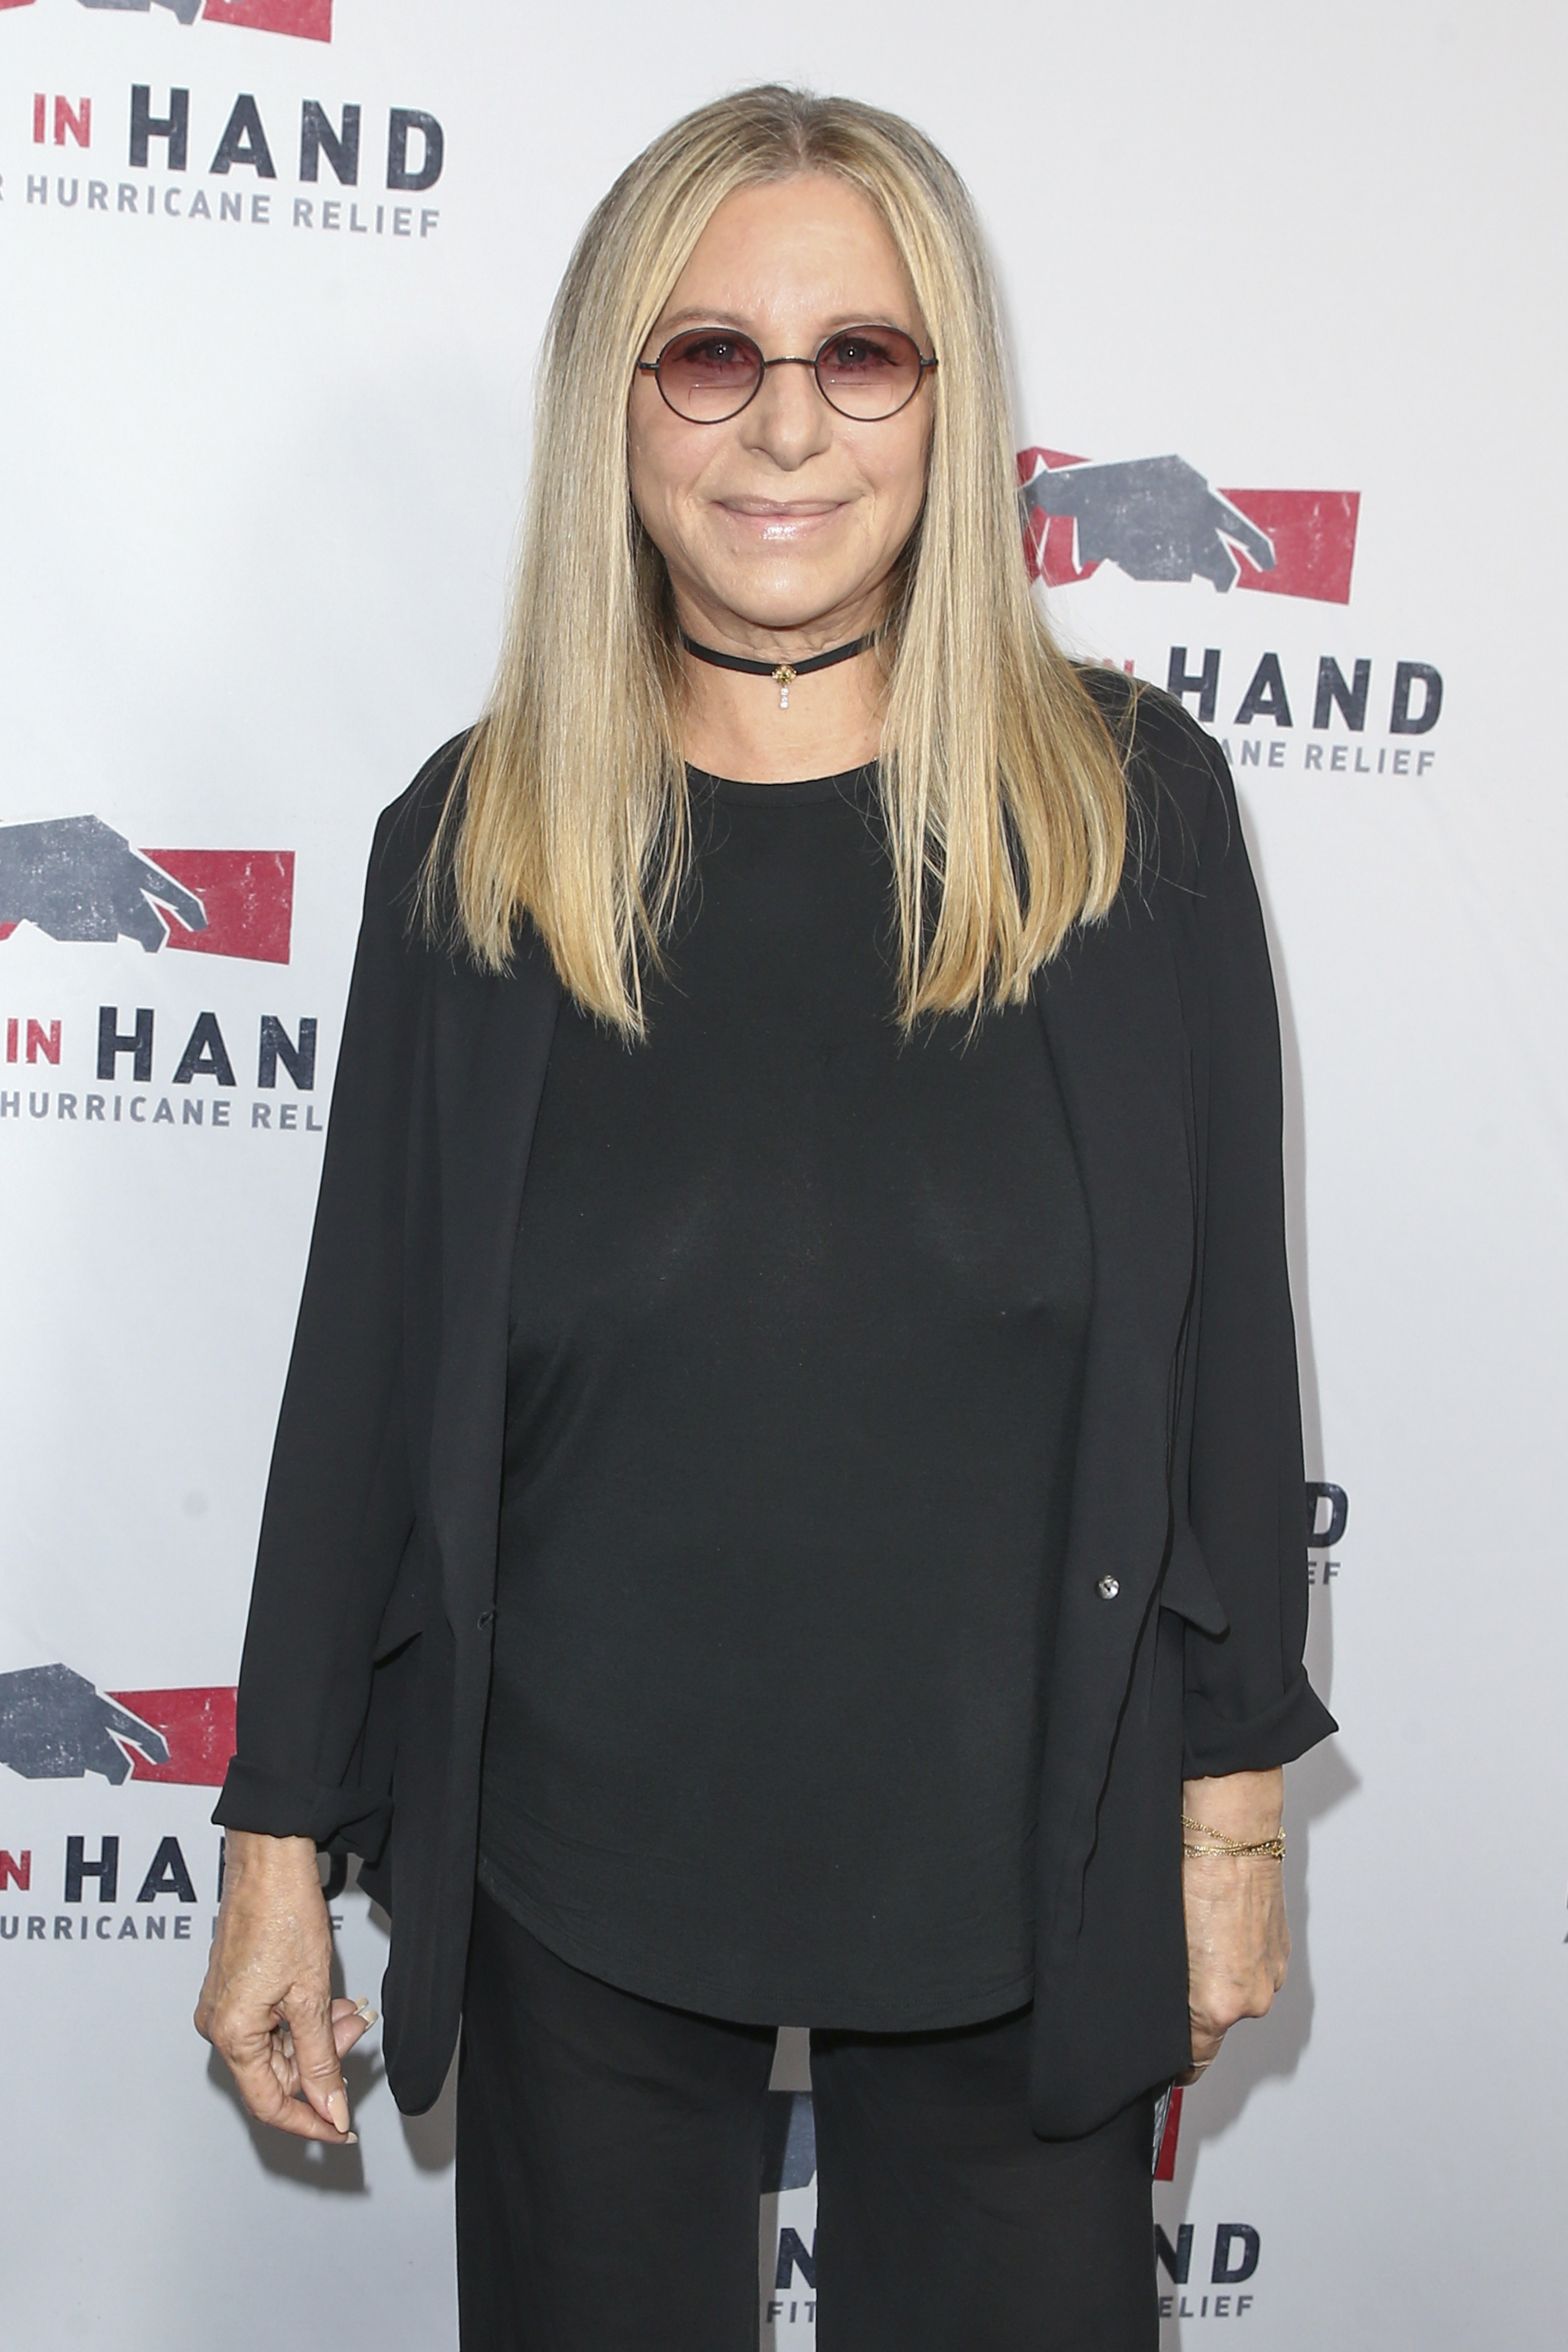 "<div class=""meta image-caption""><div class=""origin-logo origin-image none""><span>none</span></div><span class=""caption-text"">Barbra Streisand attends the Hand in Hand: A Benefit for Hurricane Harvey Relief held at Universal Studios Back Lot on Tuesday, Sept. 12, 2017 in Universal City, Calif. (John Salangsang/Invision/AP)</span></div>"